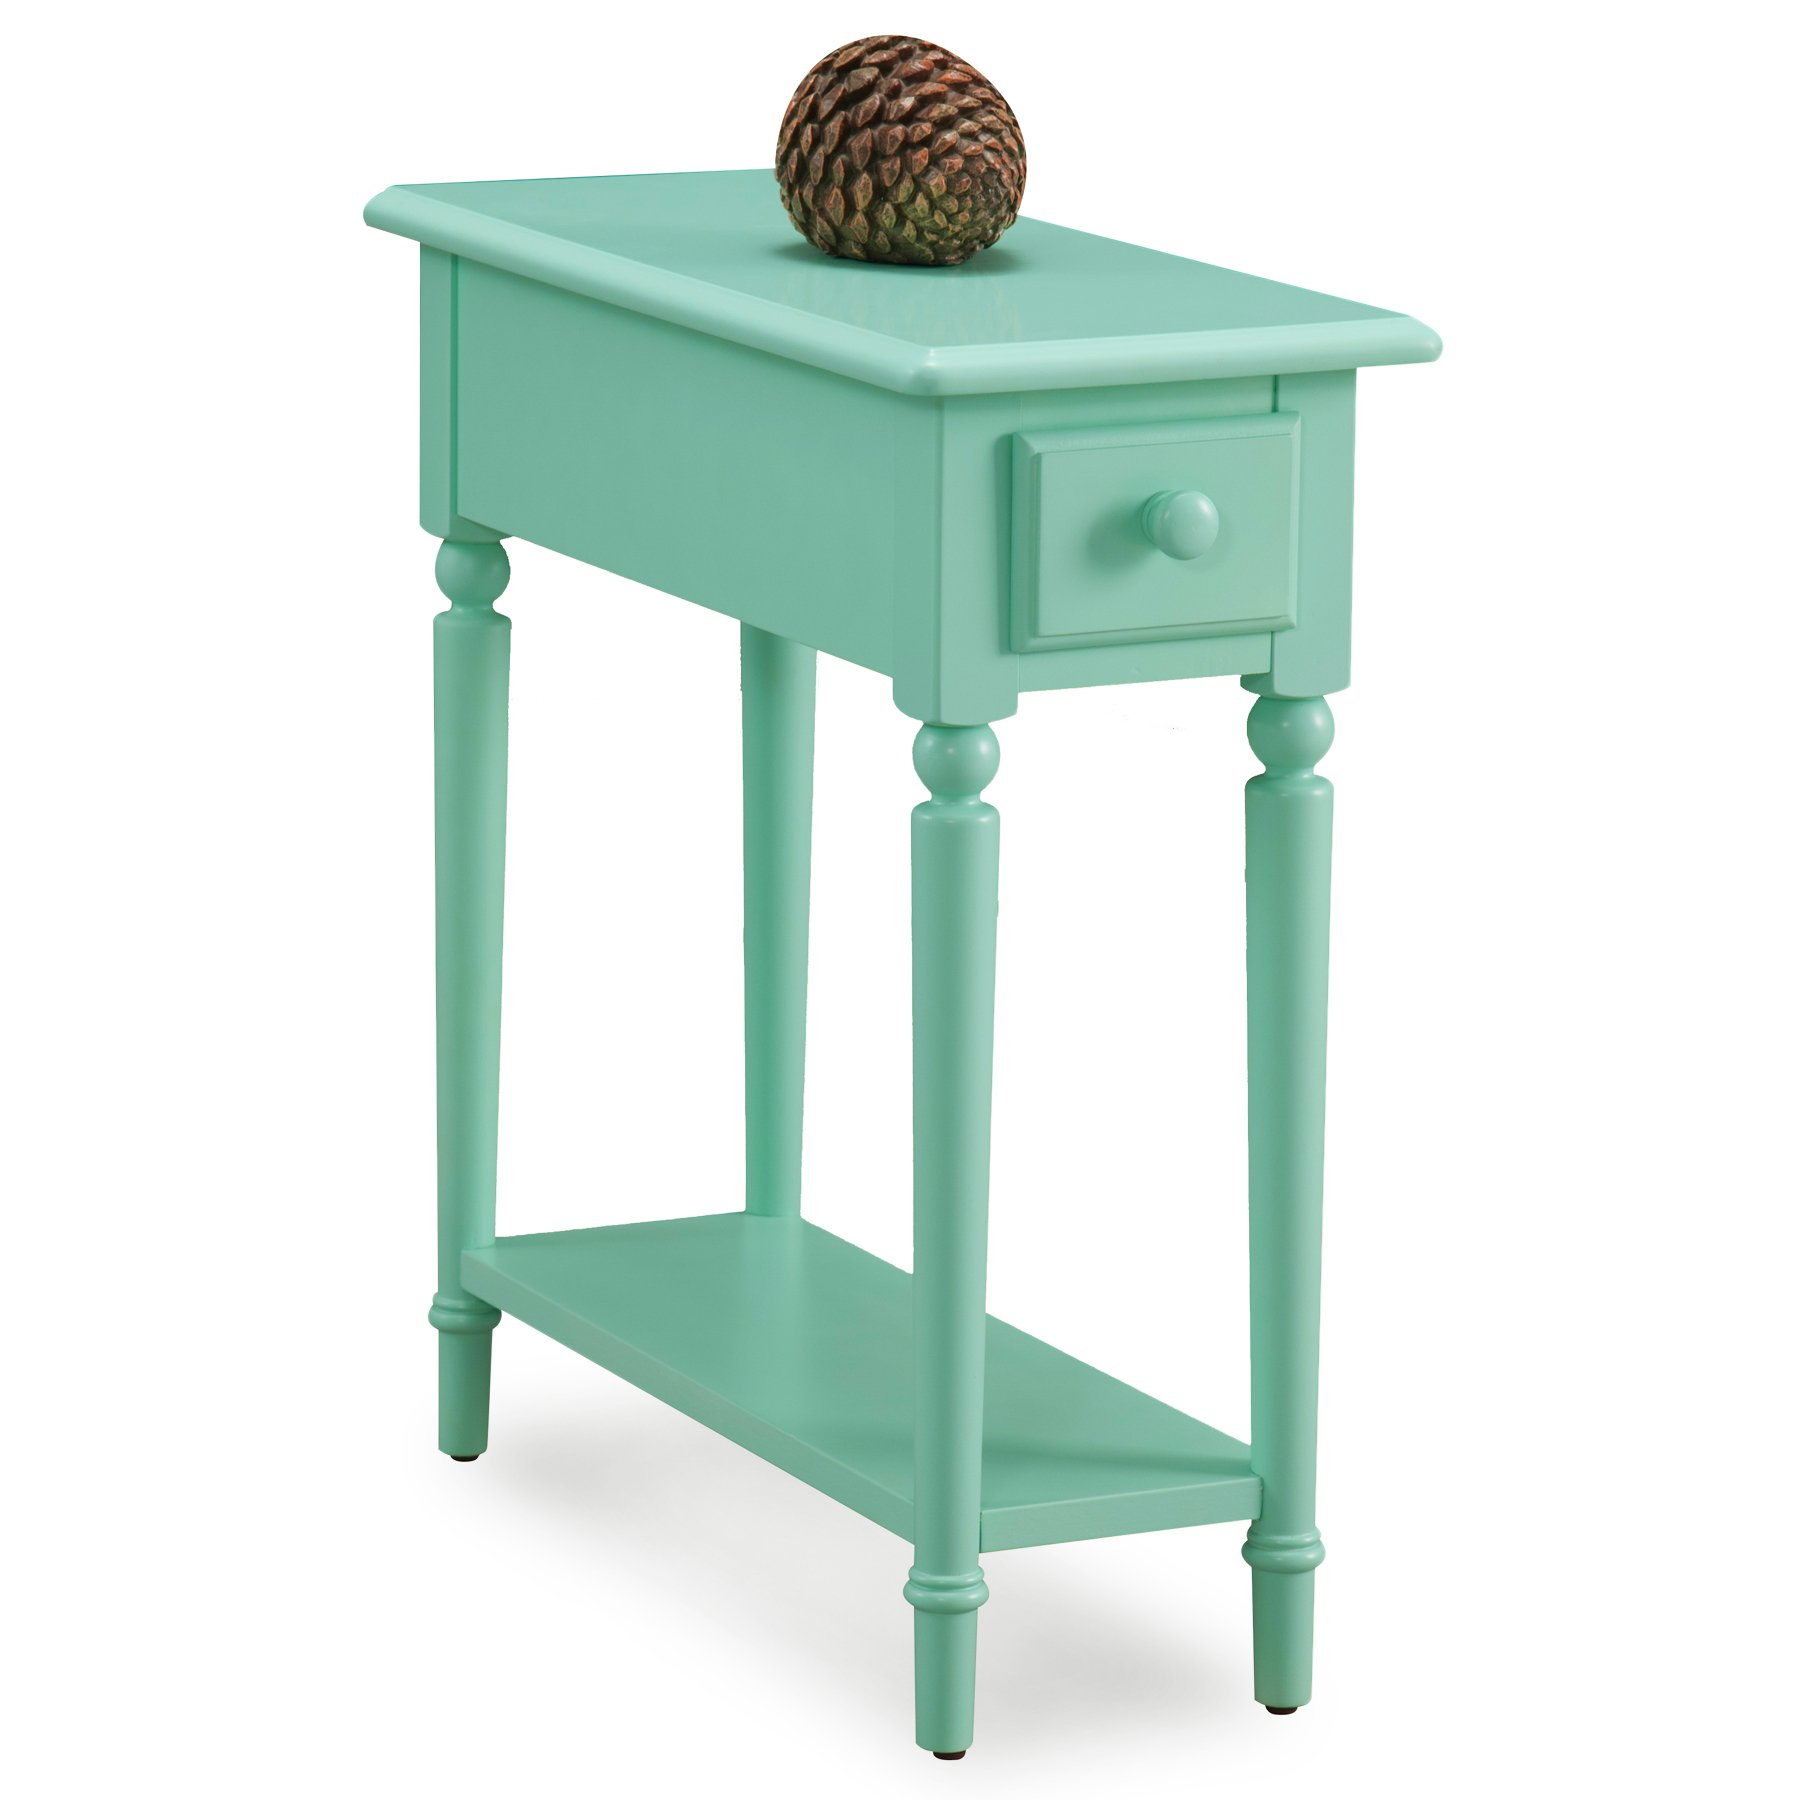 Leick 20017-GN Coastal Narrow Chairside Table with Shelf, Kiwi Green by Leick Furniture